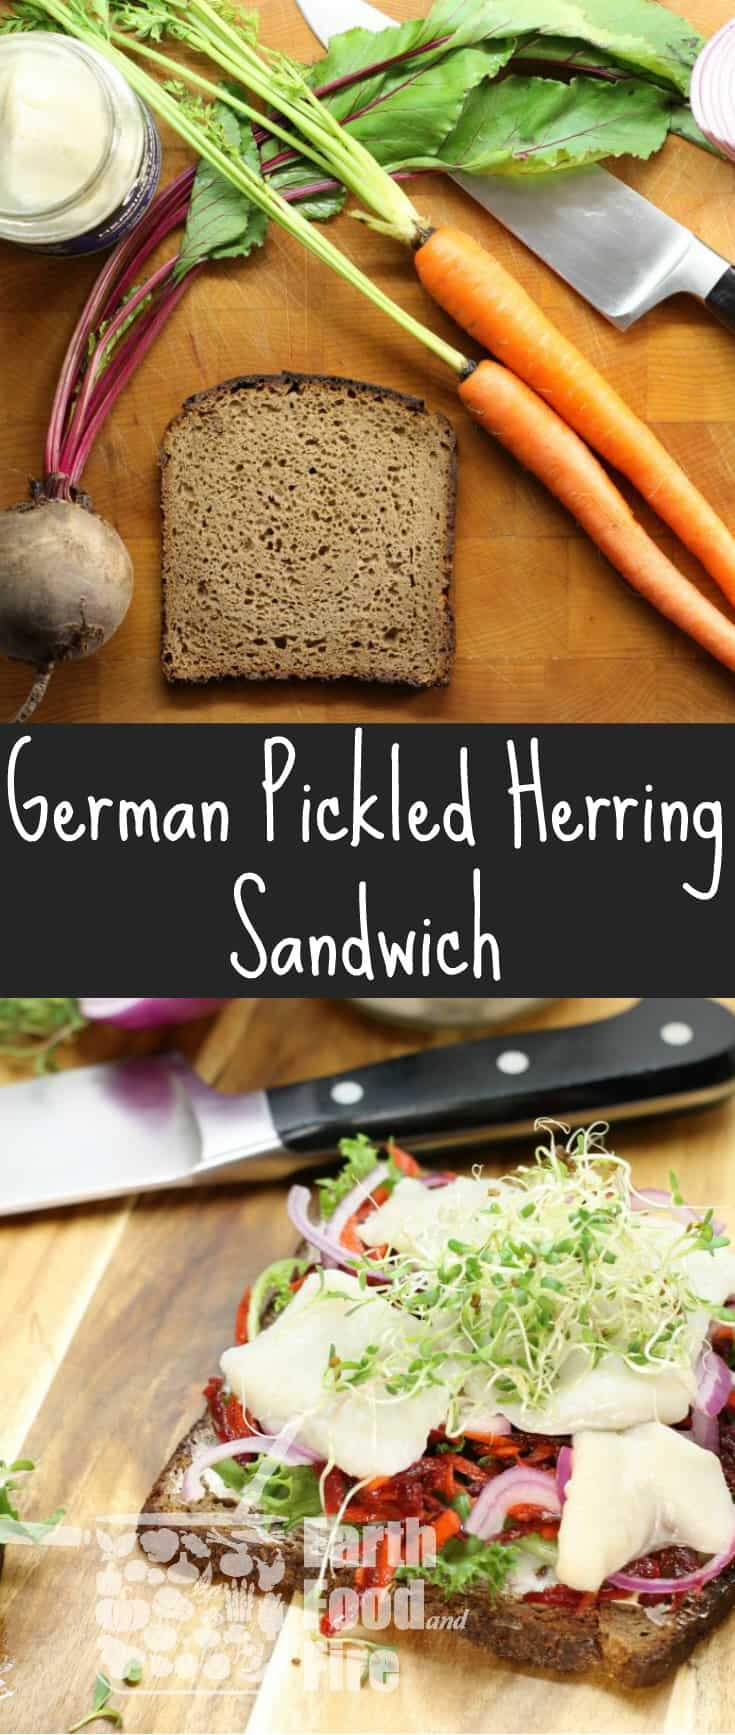 A European classic, this pickled herring sandwich, features dark rye bread, a beet and carrot slaw, red onion, and homegrown alfalfa sprouts!